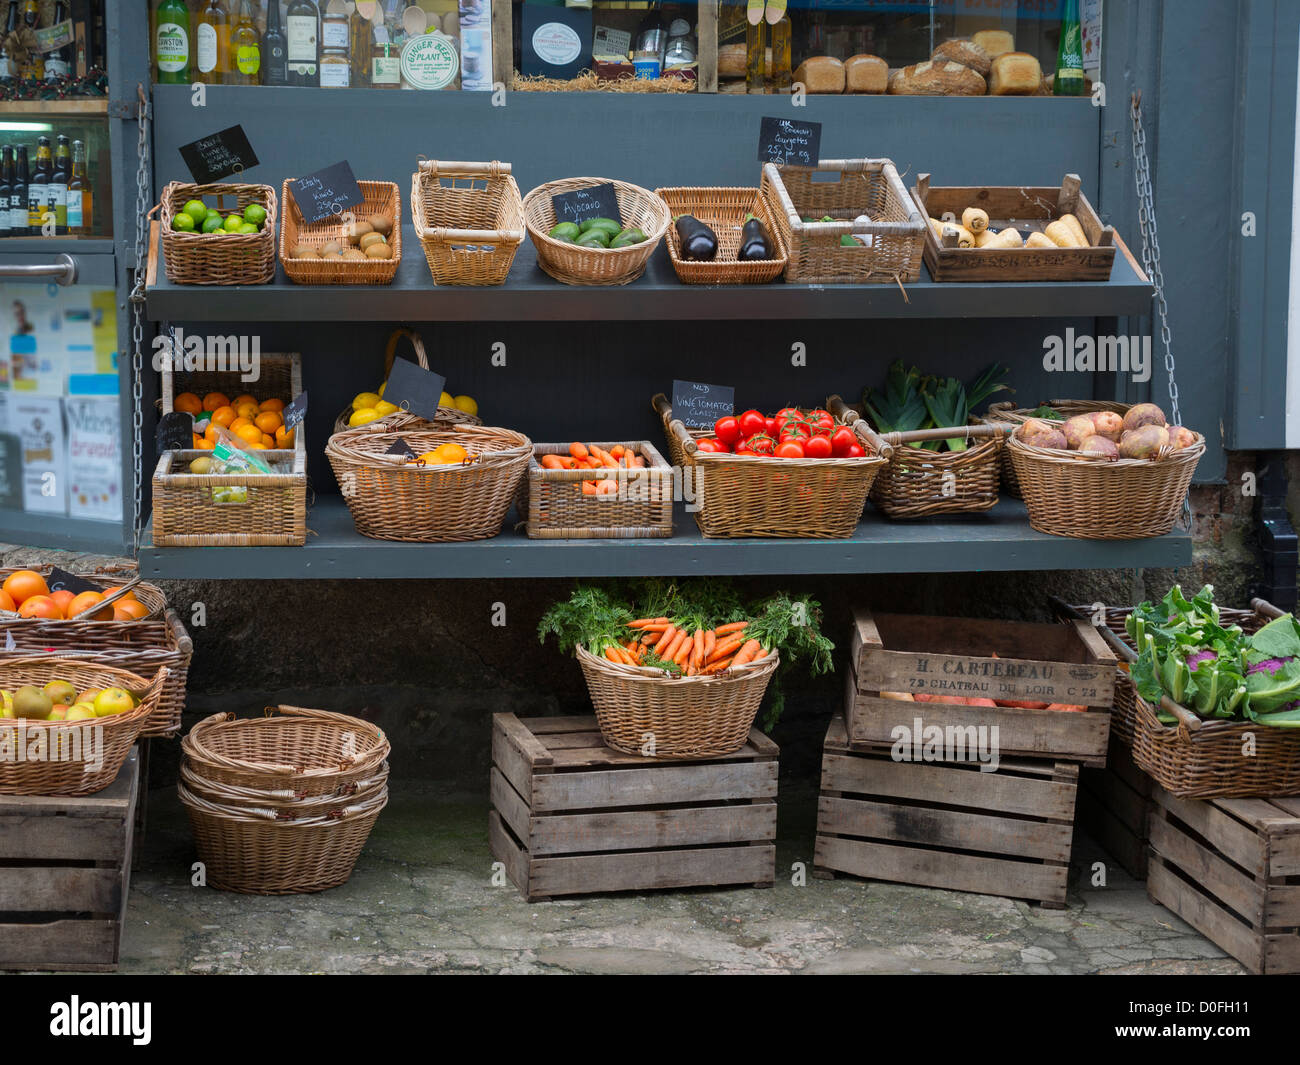 Greengrocer's display in St Ives, Cornwall Stock Photo